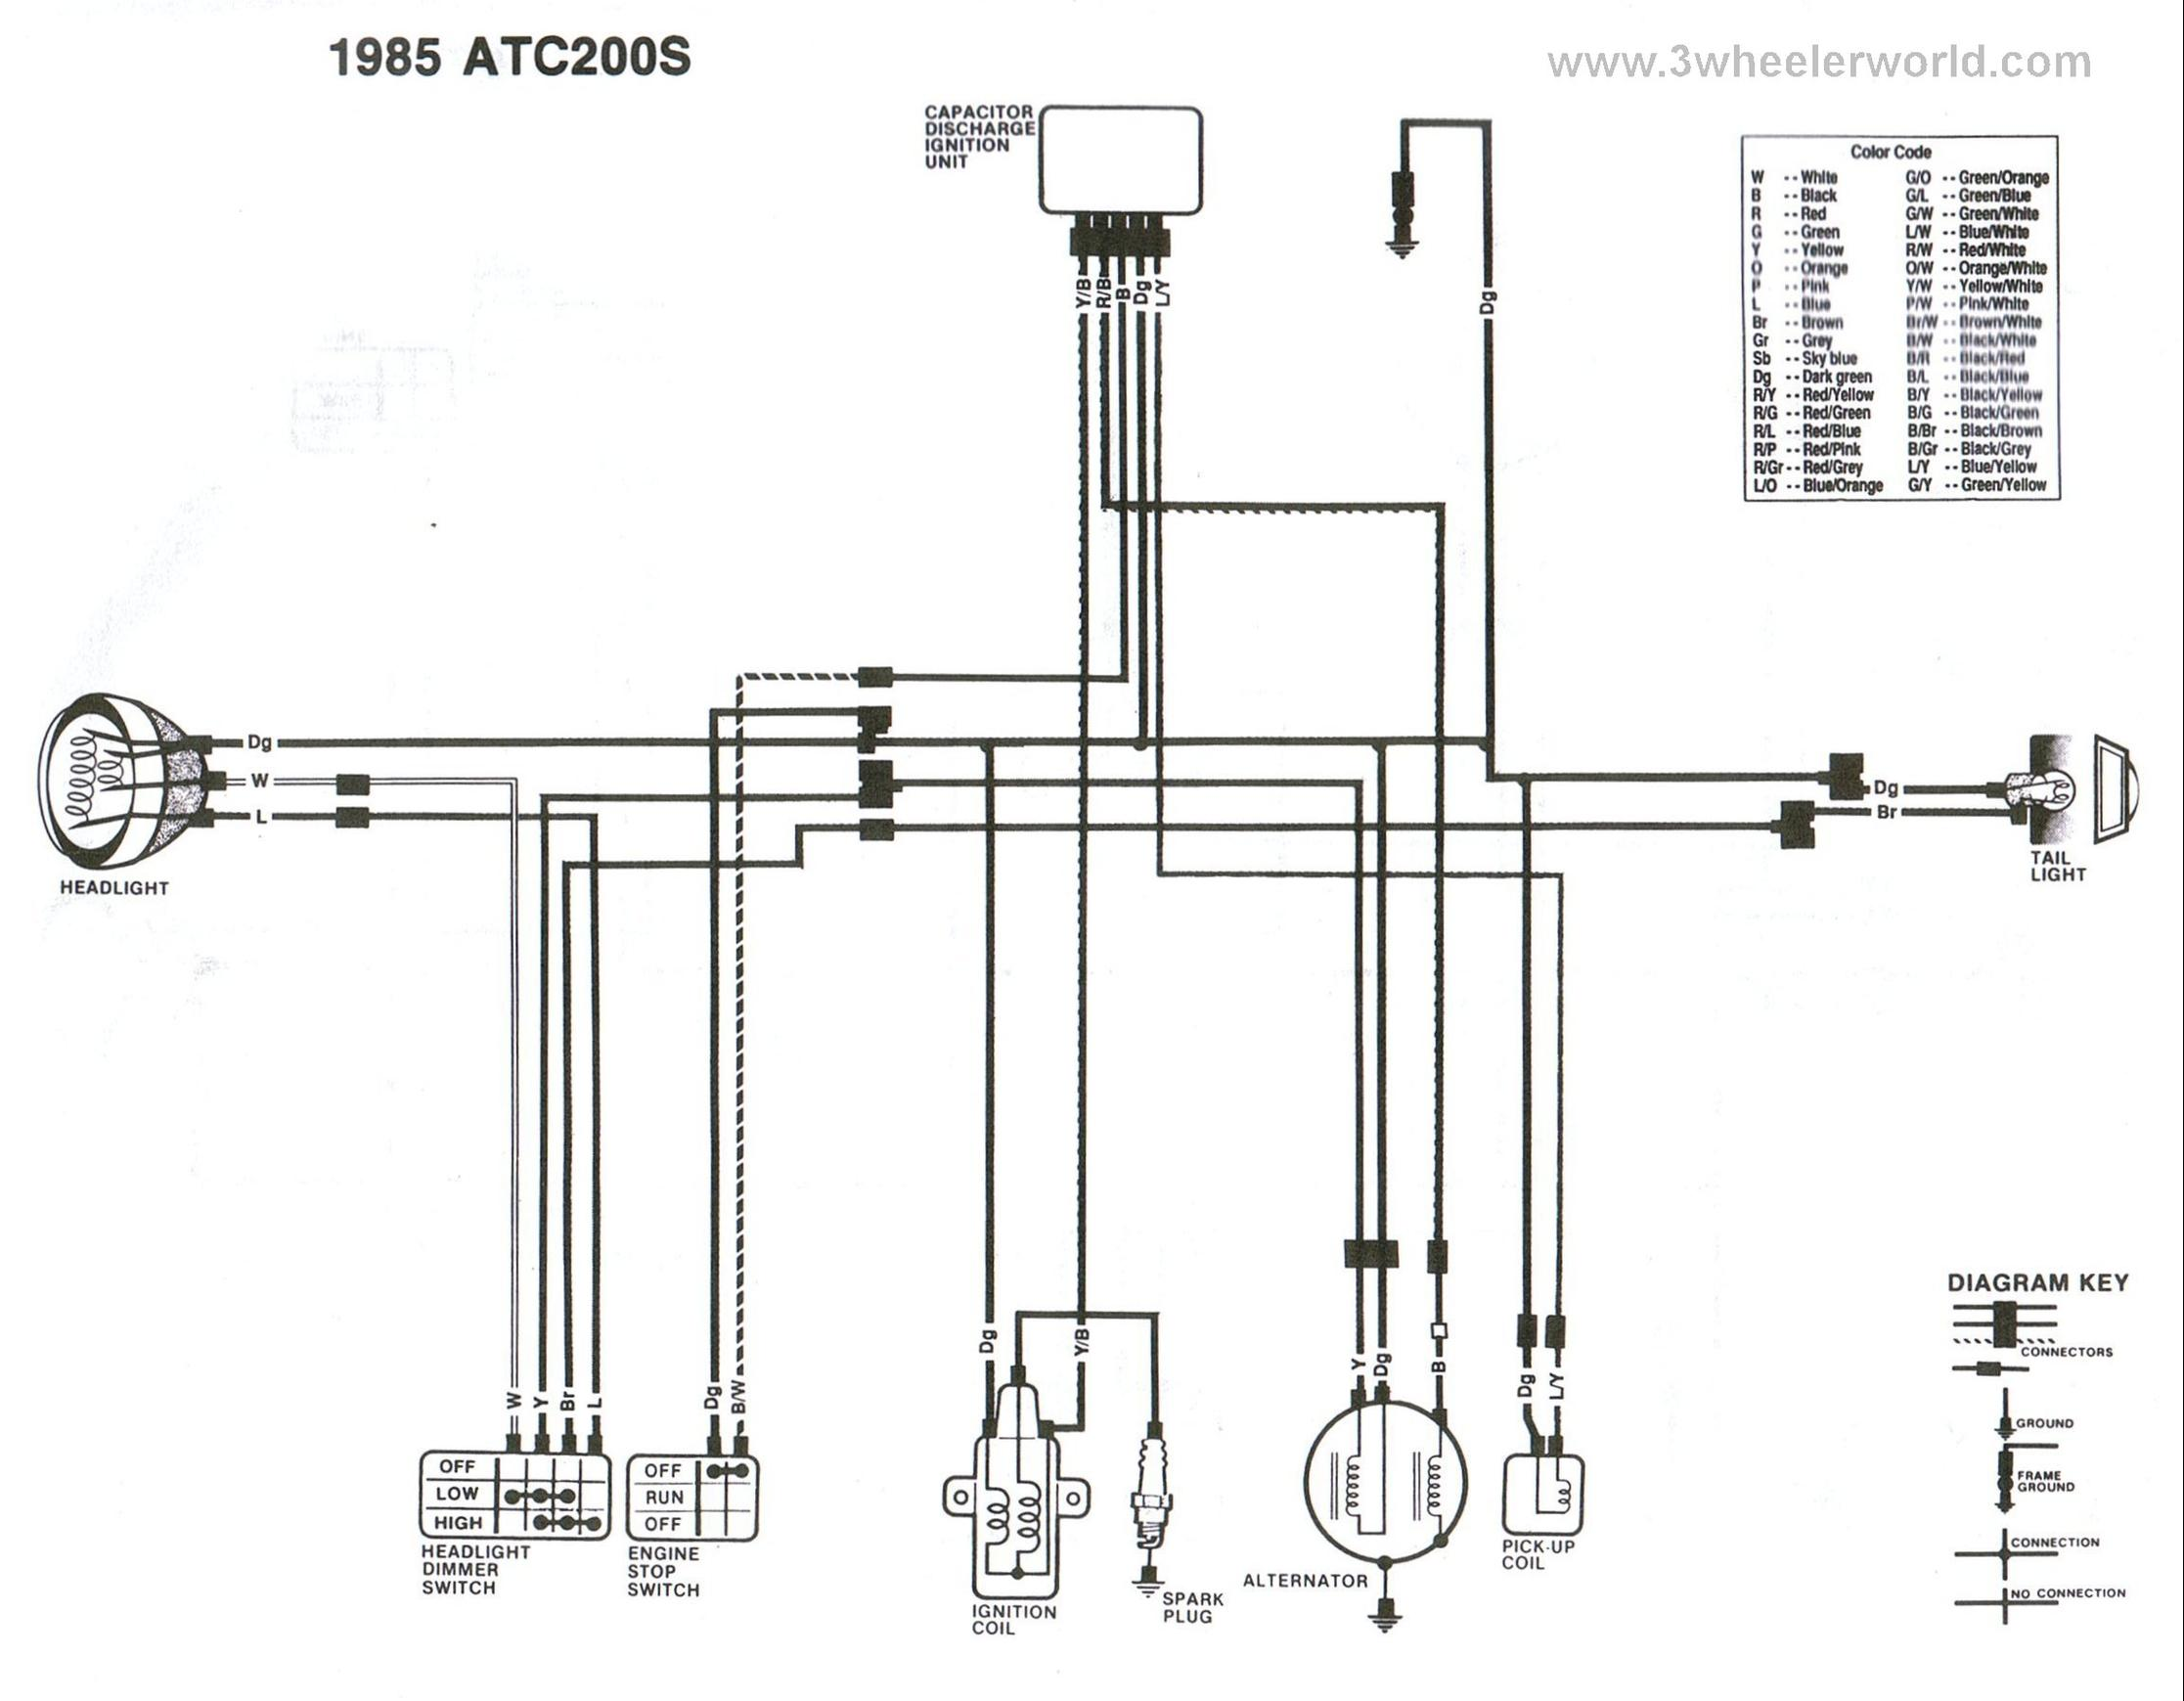 [GJFJ_338]  3WHeeLeR WoRLD - Honda ATC wiring diagrams | 200x Wiring Diagram |  | 3WHeeLeR WoRLD